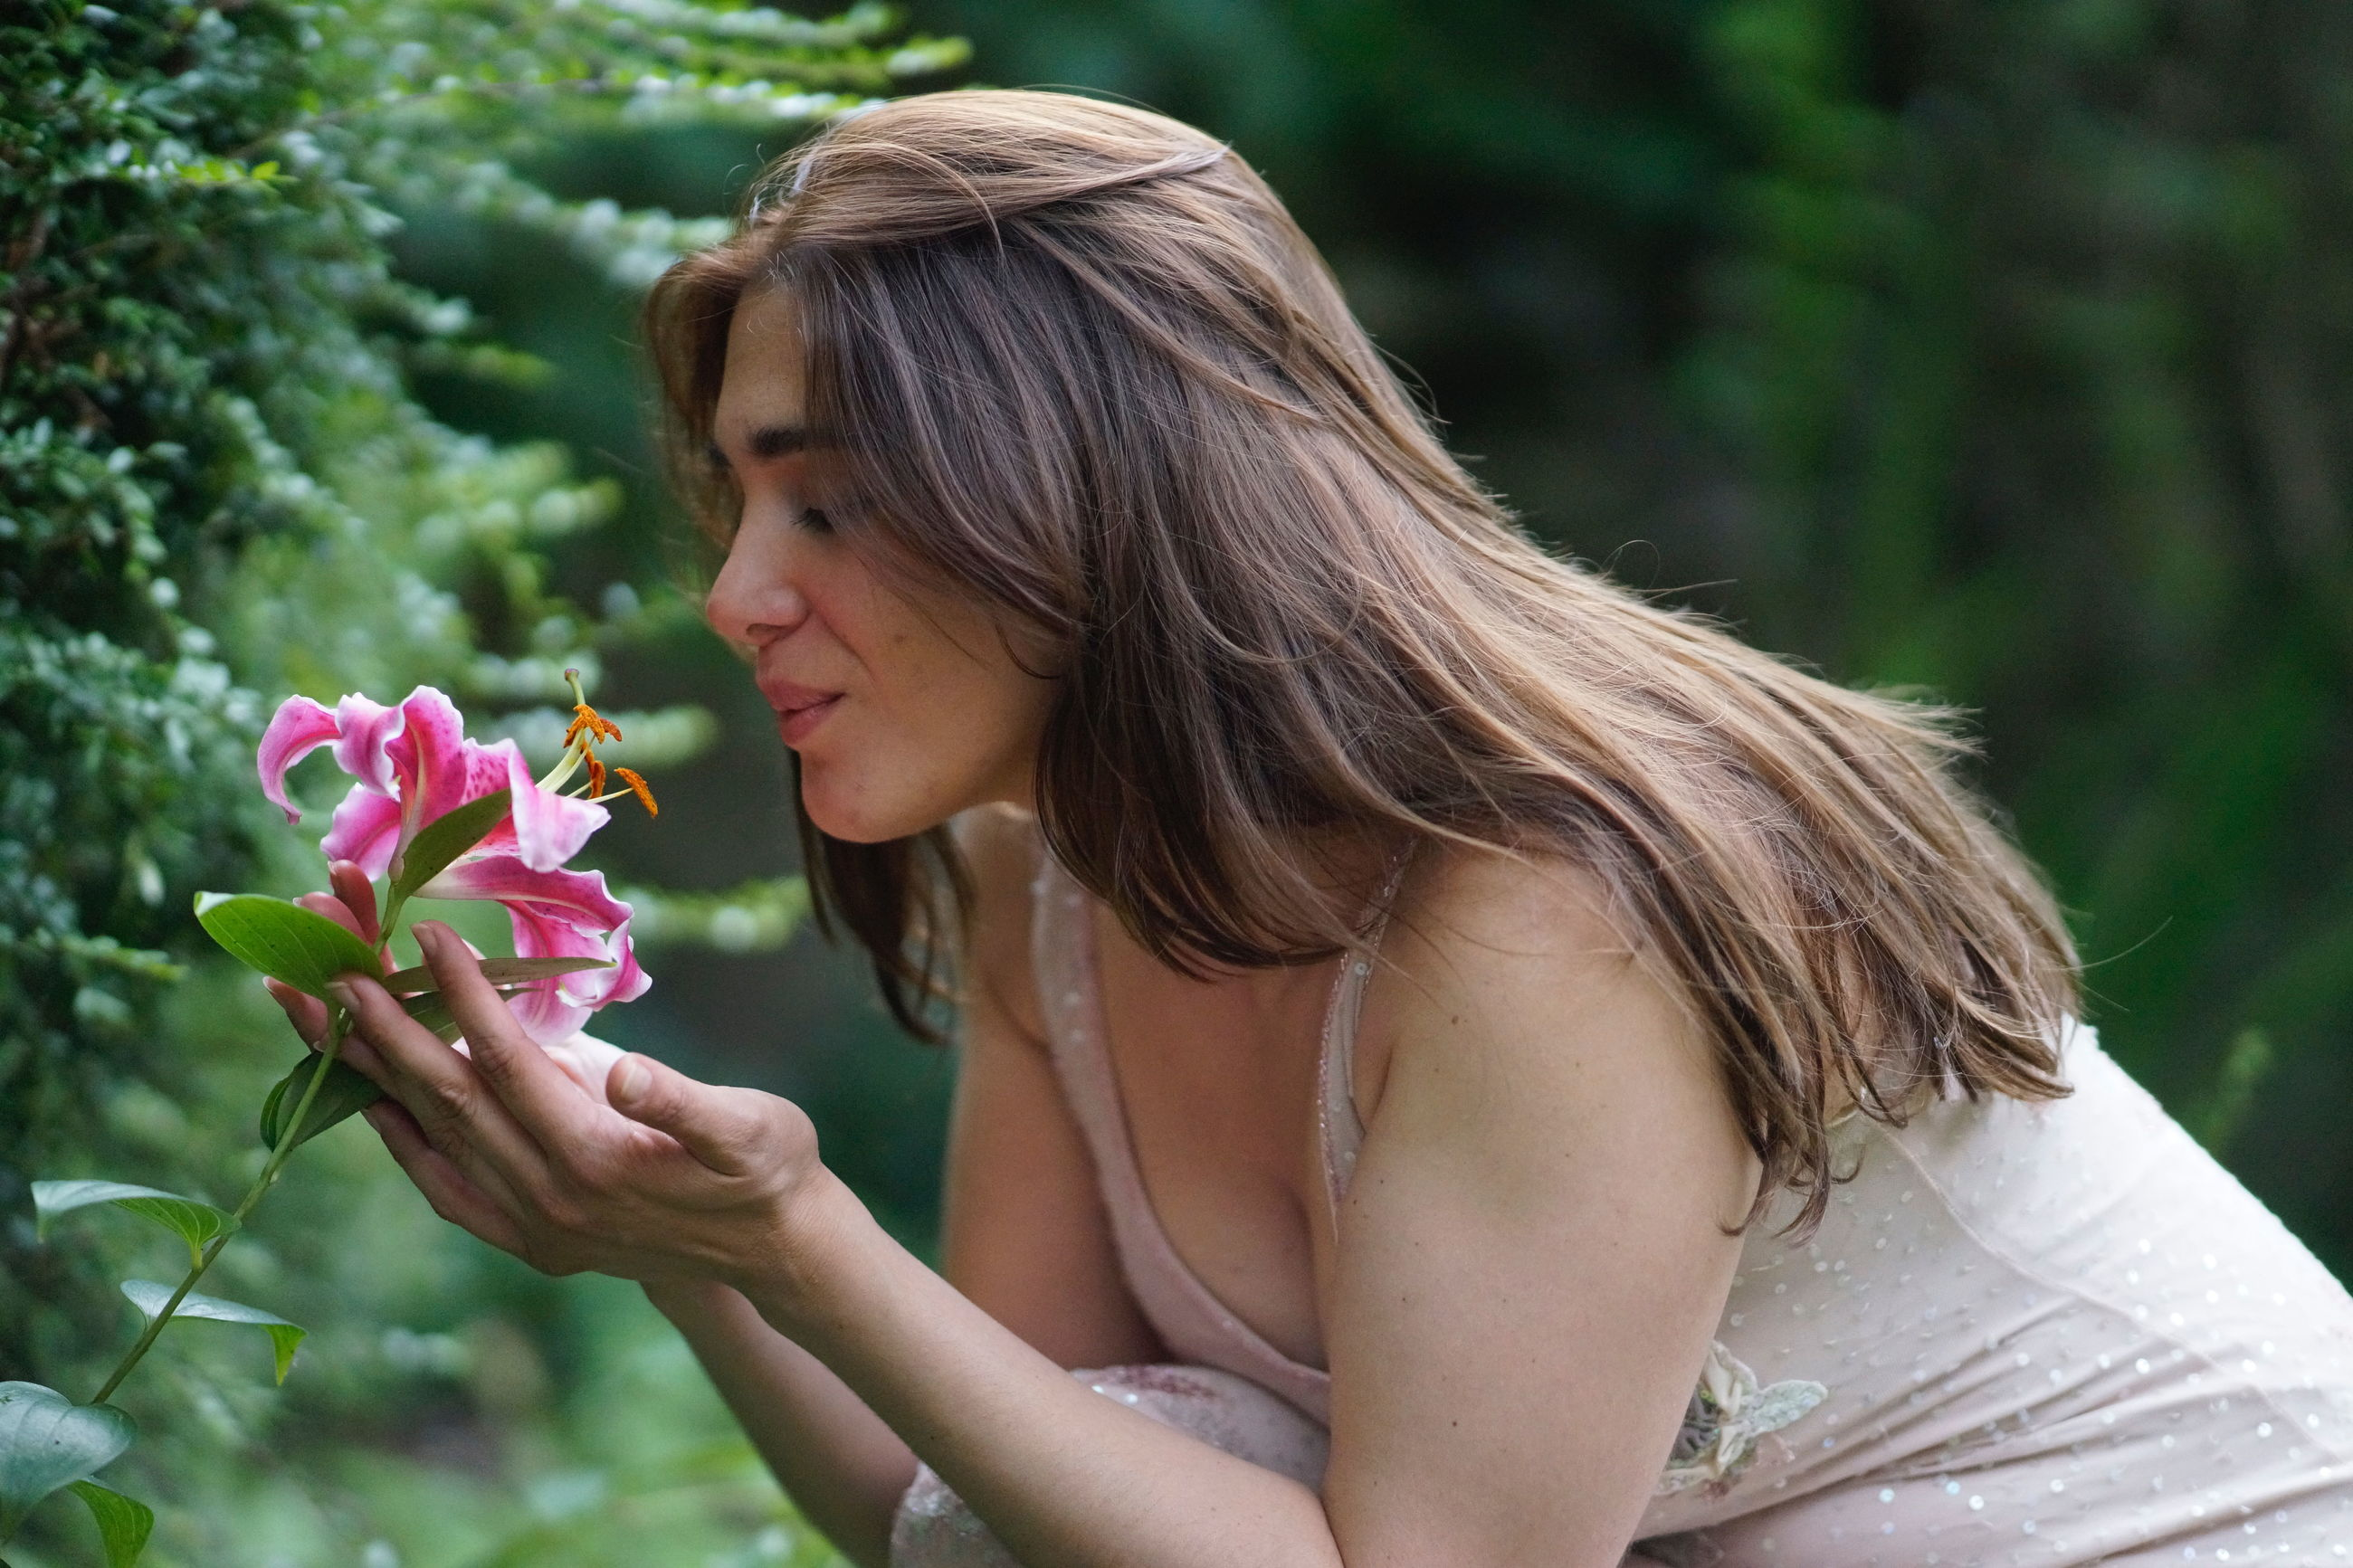 flower, one person, outdoors, focus on foreground, young adult, nature, side view, beautiful woman, young women, day, real people, beauty, fragility, lifestyles, beauty in nature, close-up, freshness, people